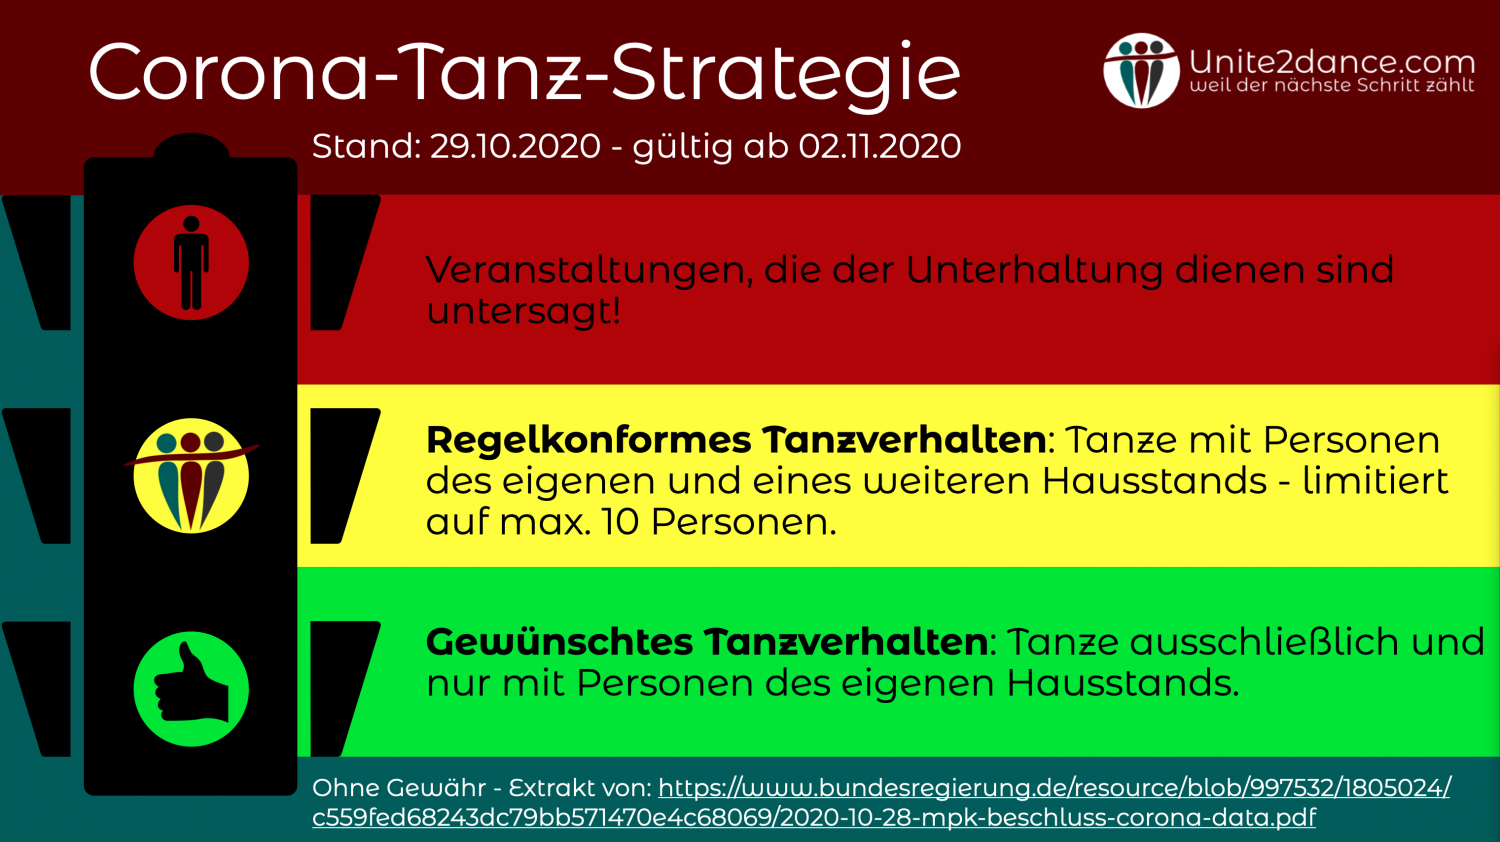 Corona-Tanz-Strategie-20201029